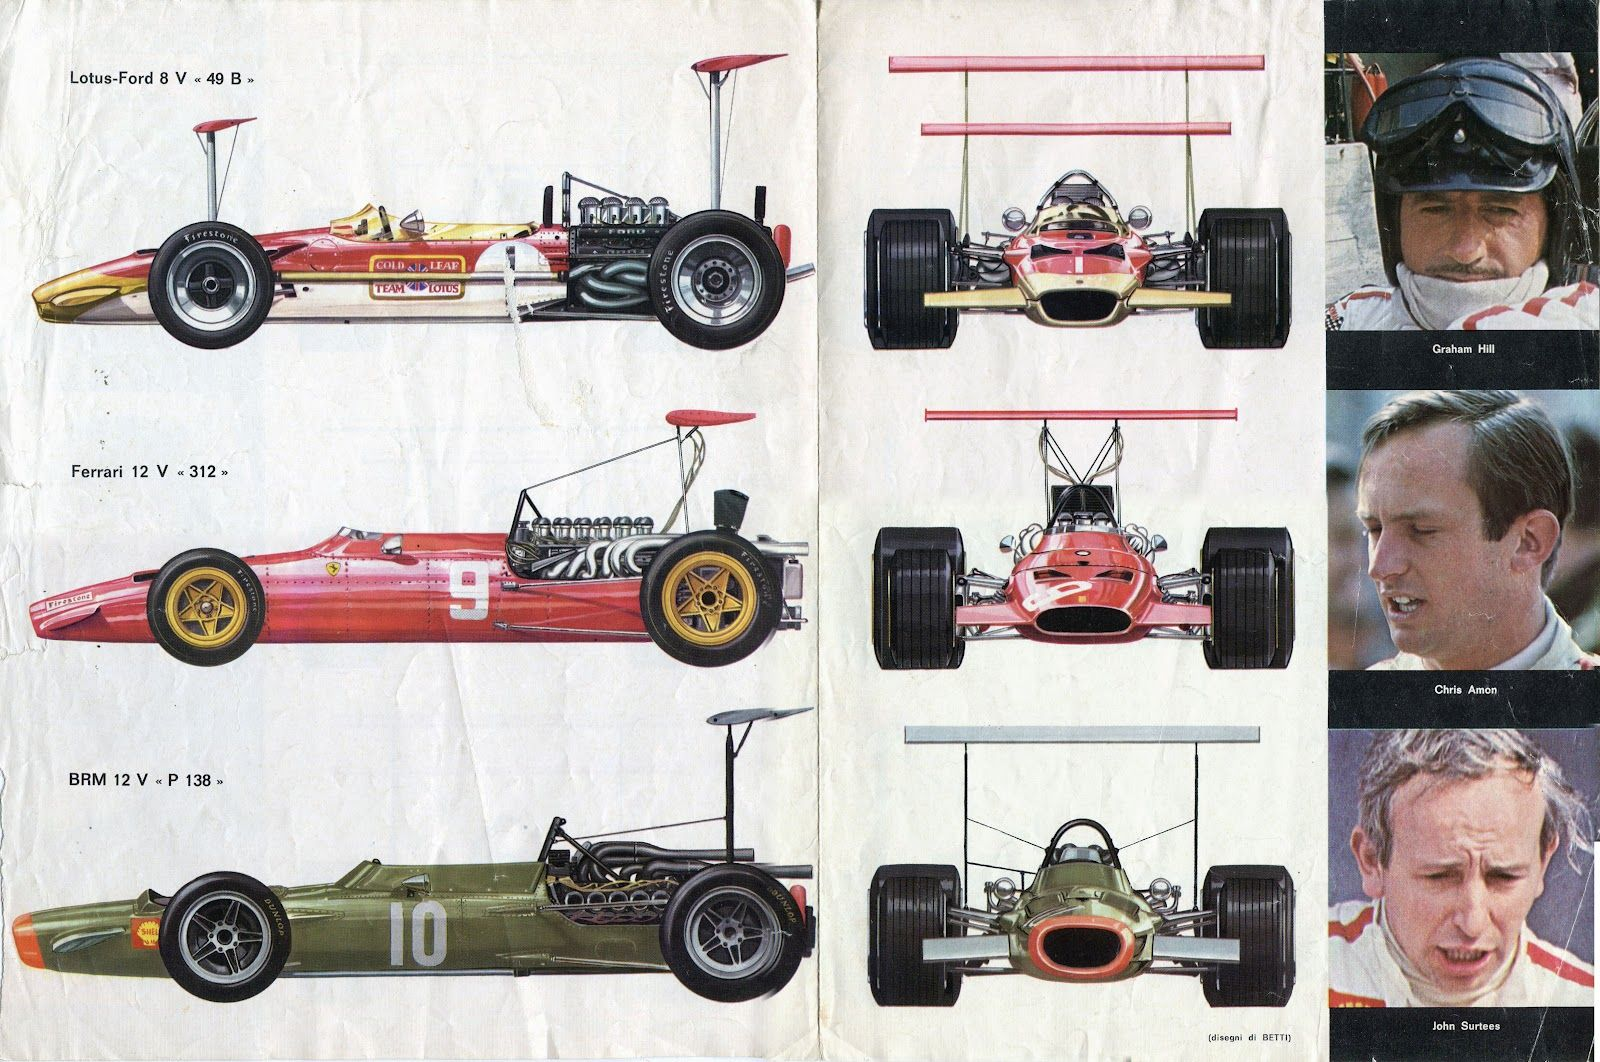 f1 1969 drivers and cars